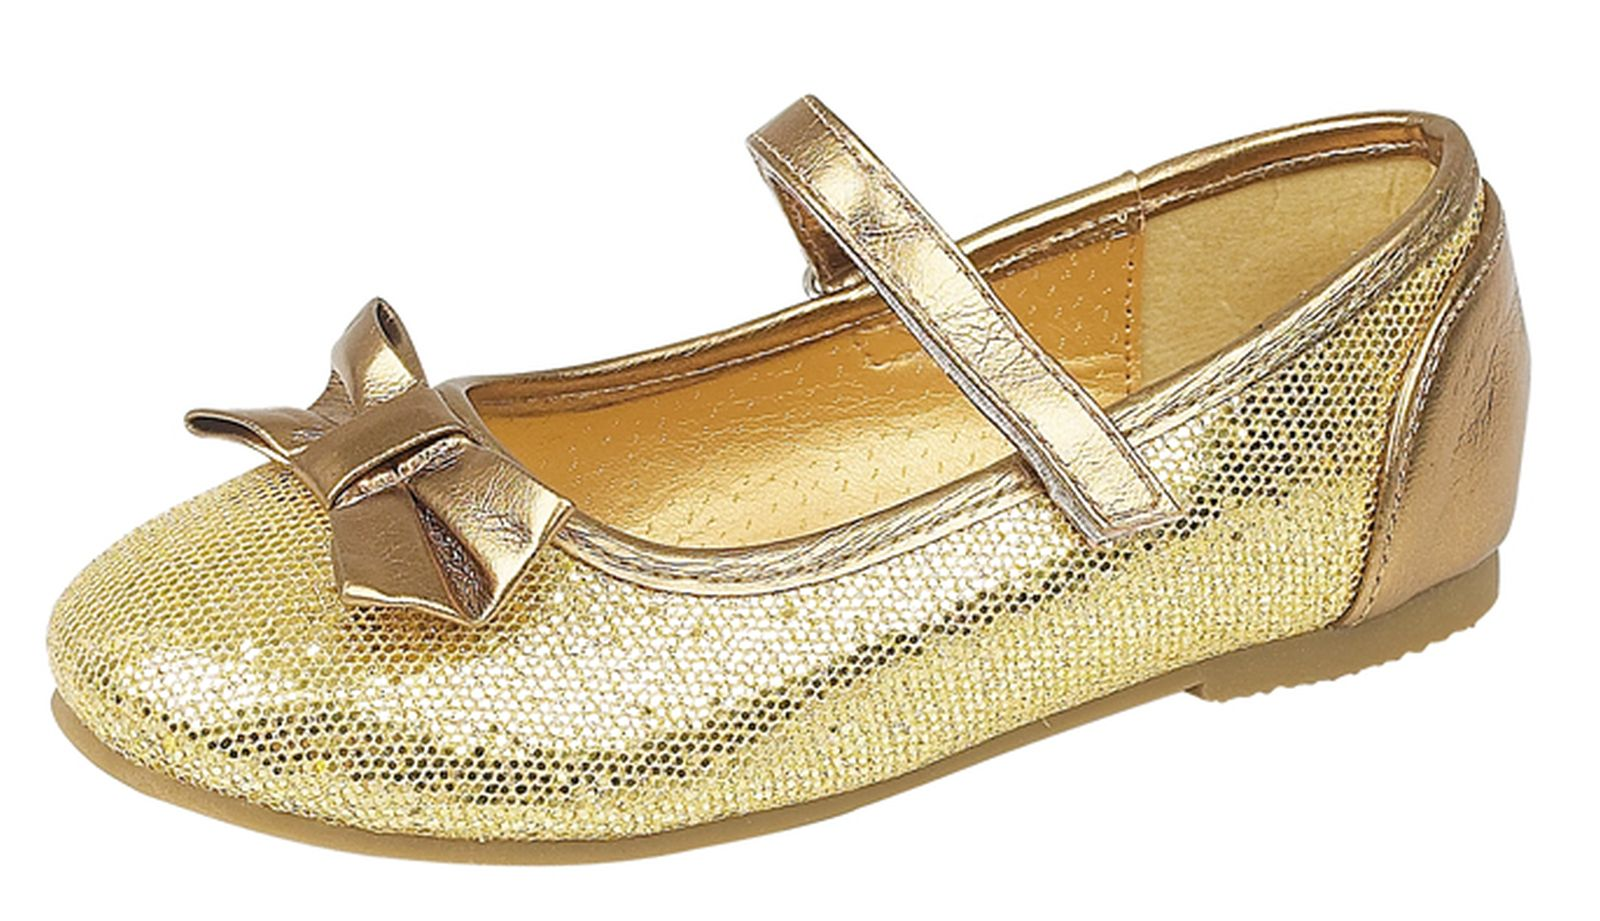 Find great deals on eBay for Girls Gold Glitter Shoes in Girls' Shoes and Accessories. Shop with confidence.